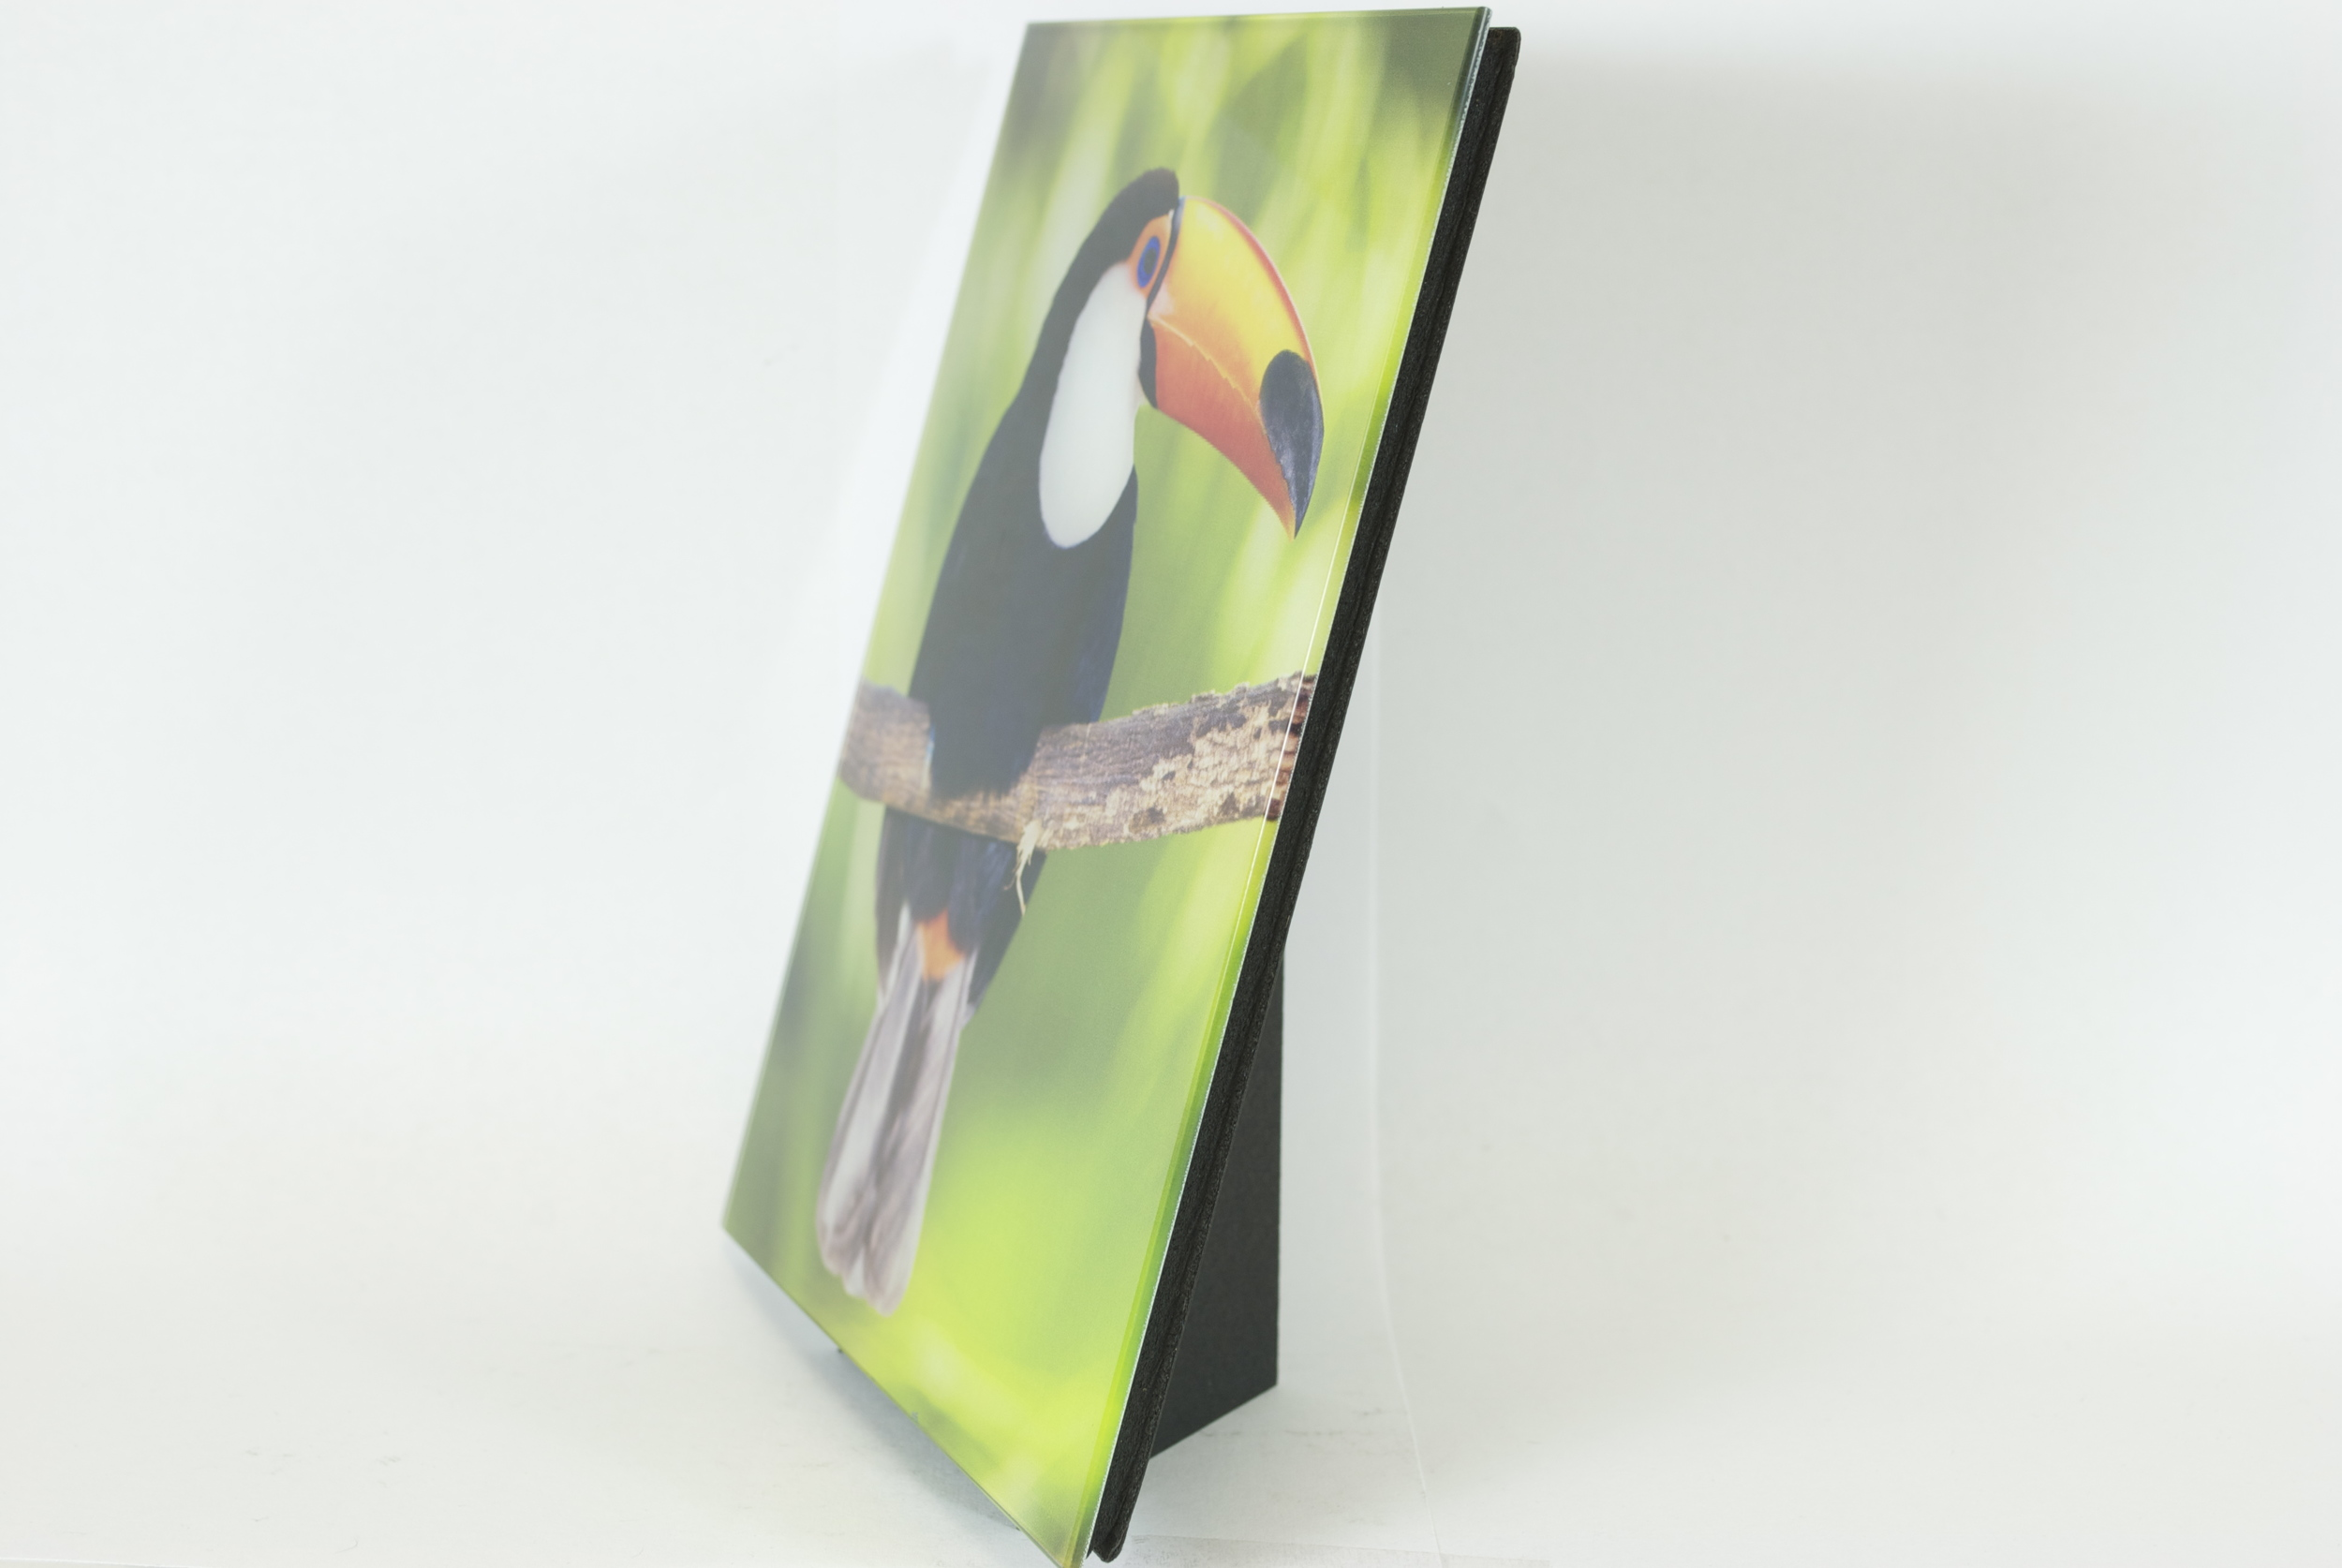 Fracture Glass Print Stand (photo courtesy Fracture's Press Release)